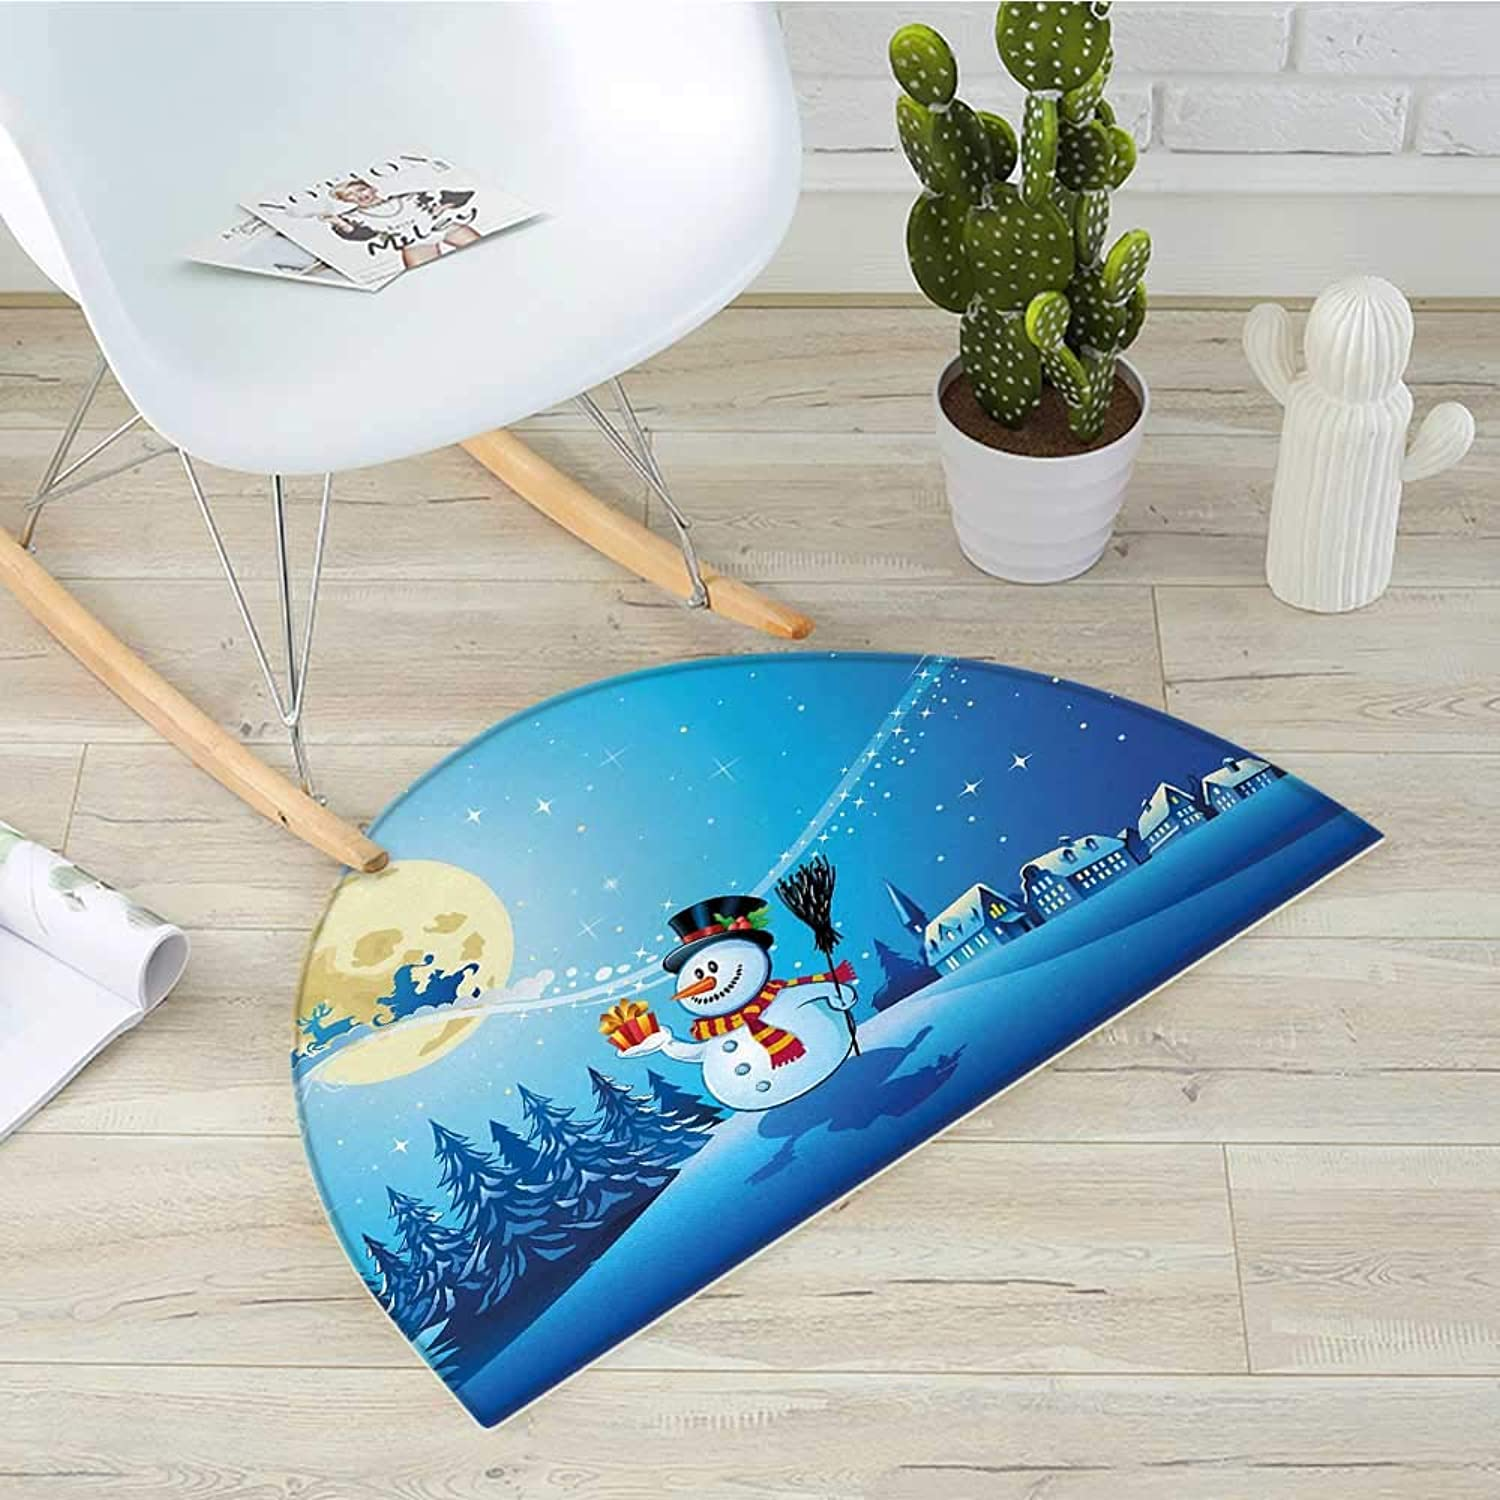 Christmas Semicircle Doormat Snowy Landscape Pines Houses Starry Sky Full Moon and Santa with Present Halfmoon doormats H 31.5  xD 47.2  bluee Eggshell White